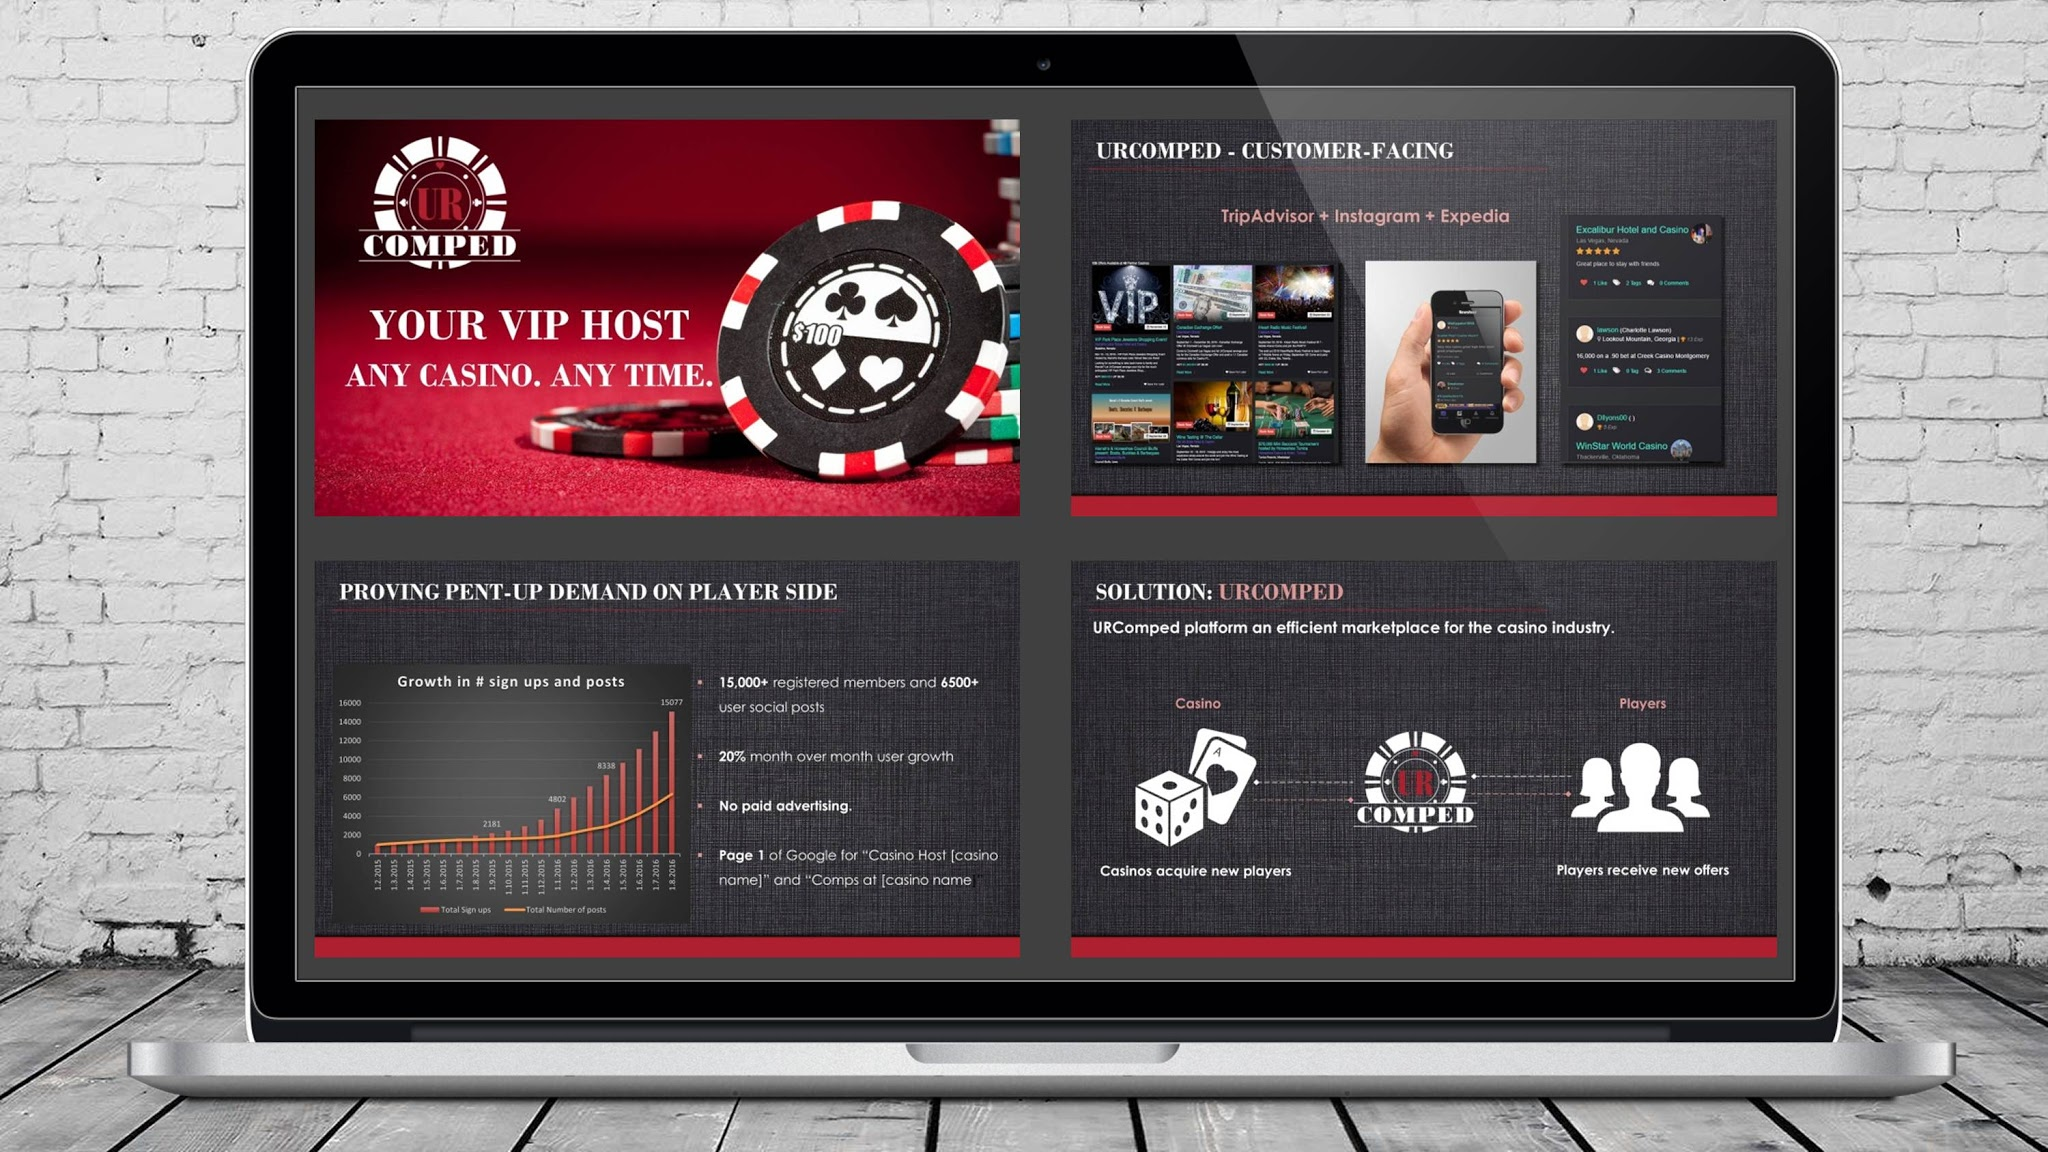 Casino Investor Pitch Deck for a casino marketing company, showing their revolutionary IT solution, which connects the casinos and the players.